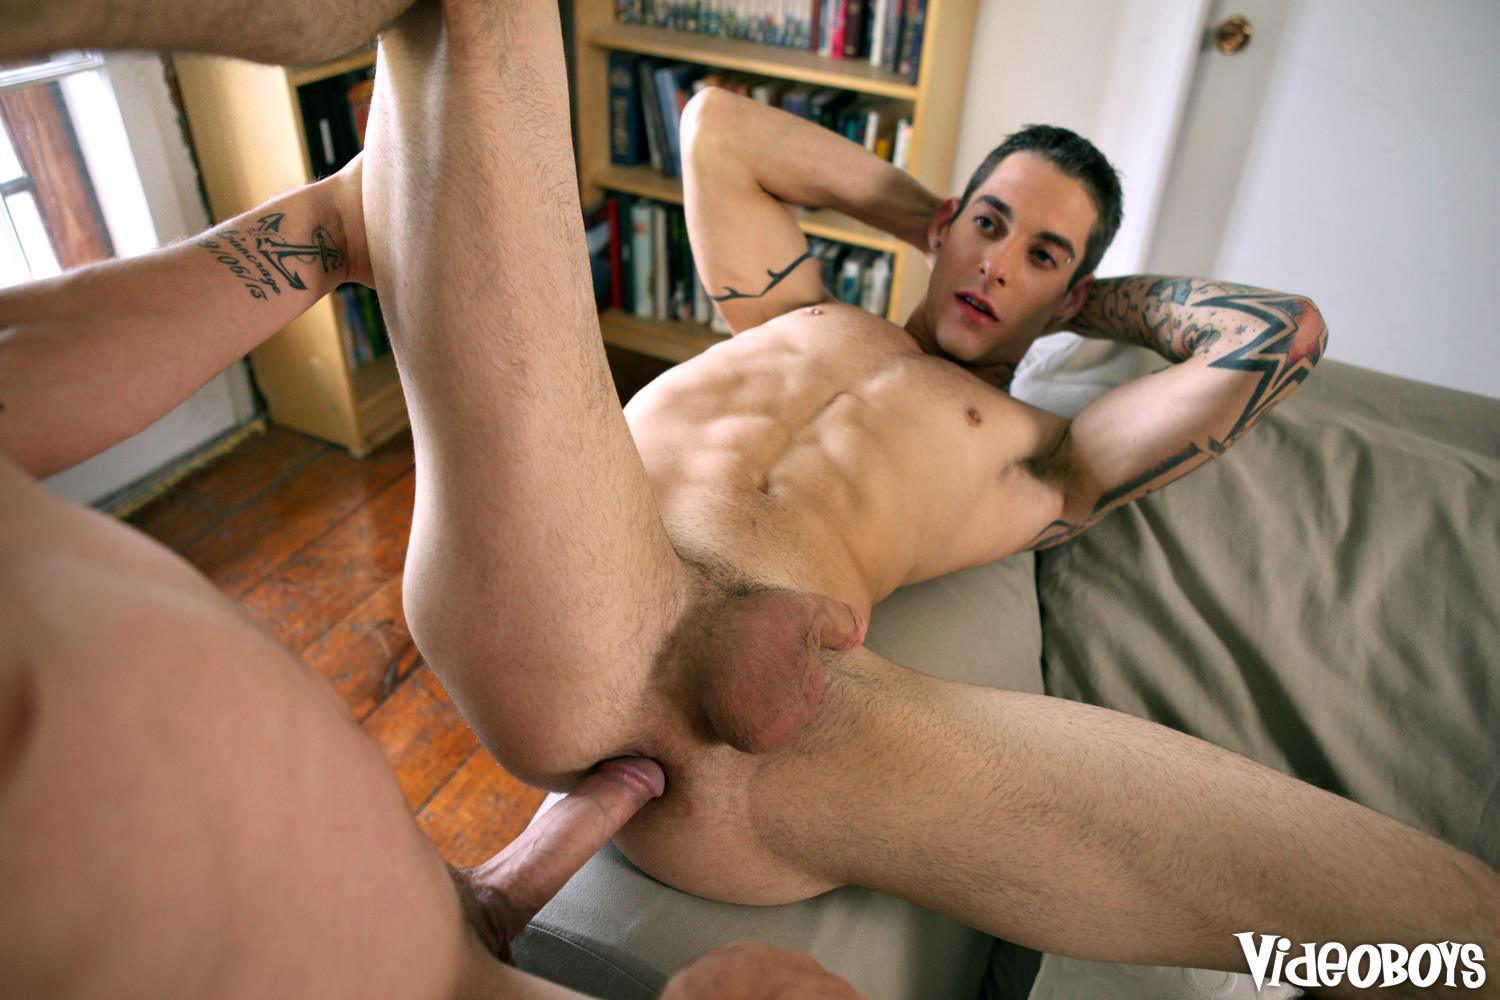 Videoboys-Ben-Rose-and-Jimmy-Little-big-cock-twinks-fucking-Amateur-Gay-Porn-21 Jimmy Little and Ben Rose: Twink Gets His Ass Worked Good